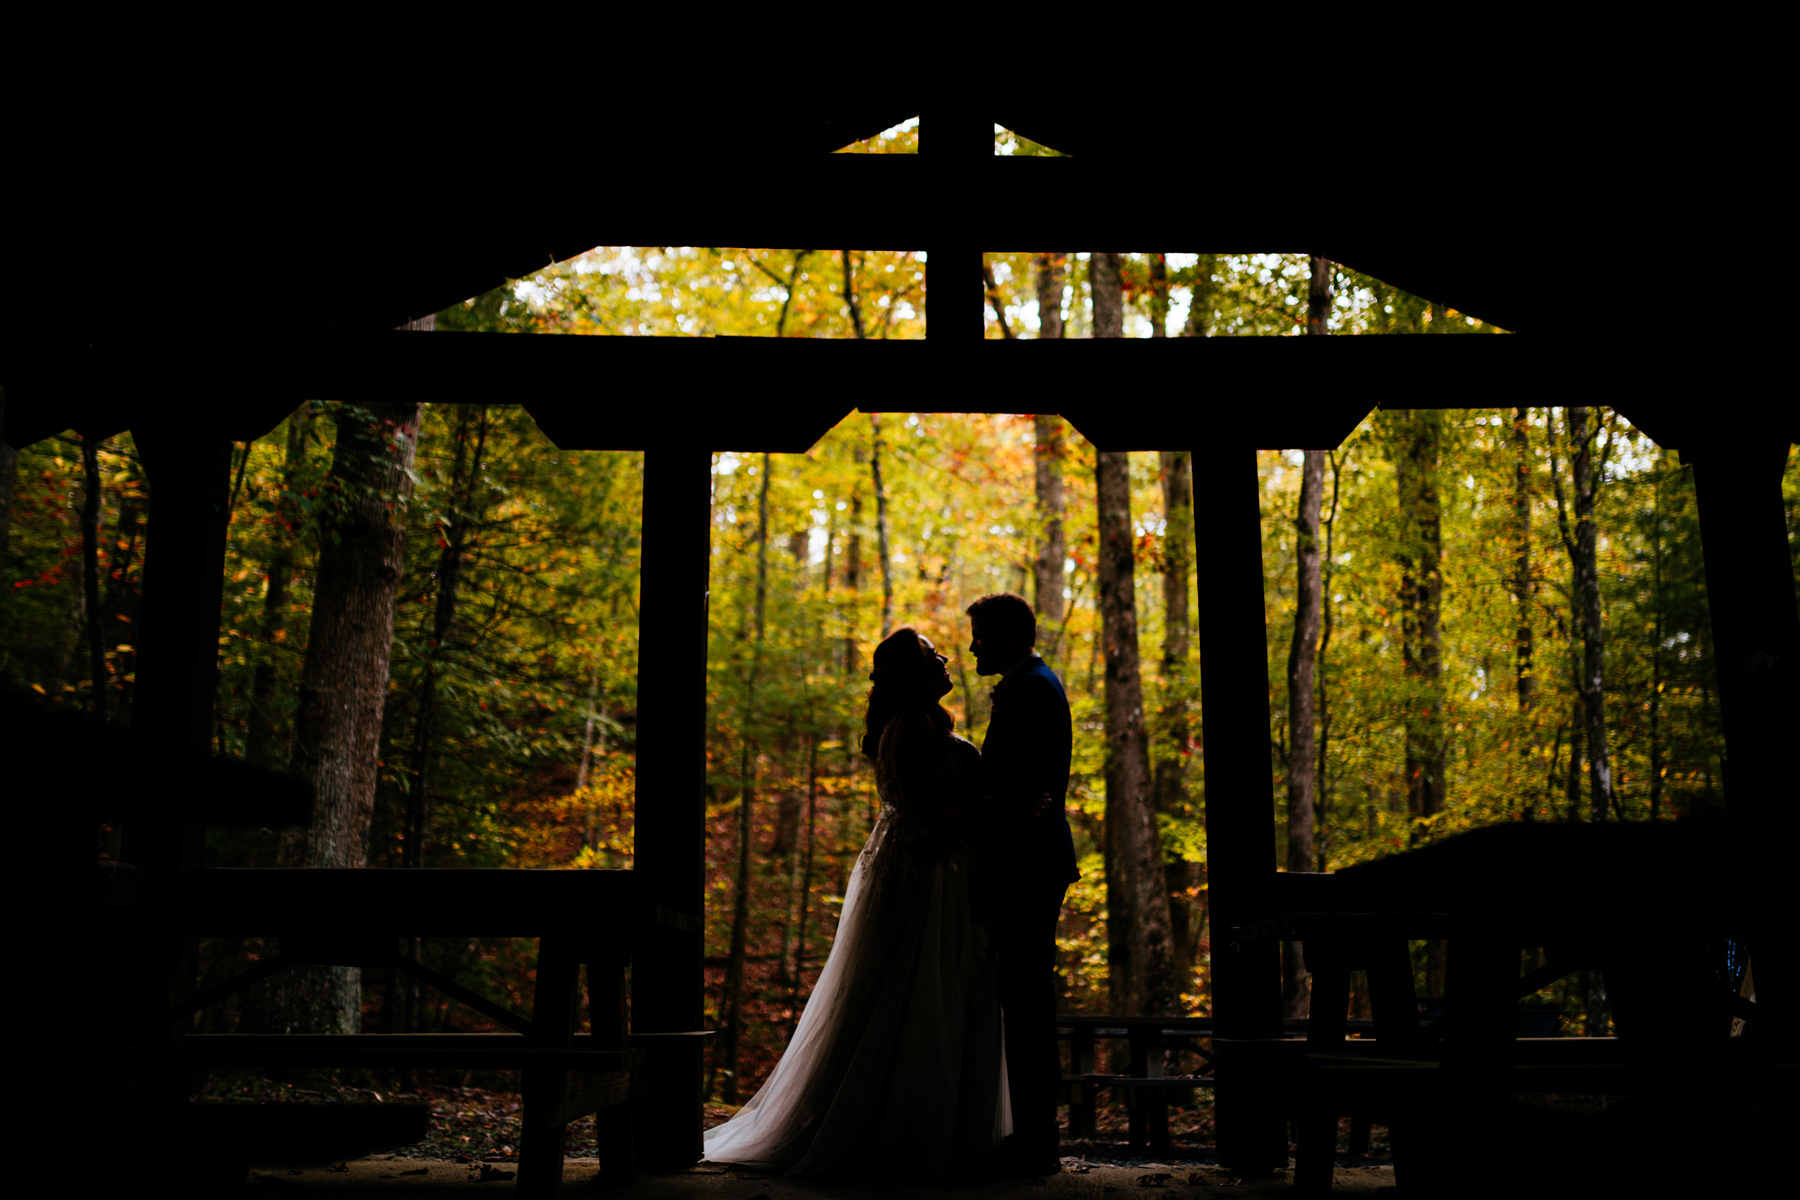 silhouette bride and groom in forest